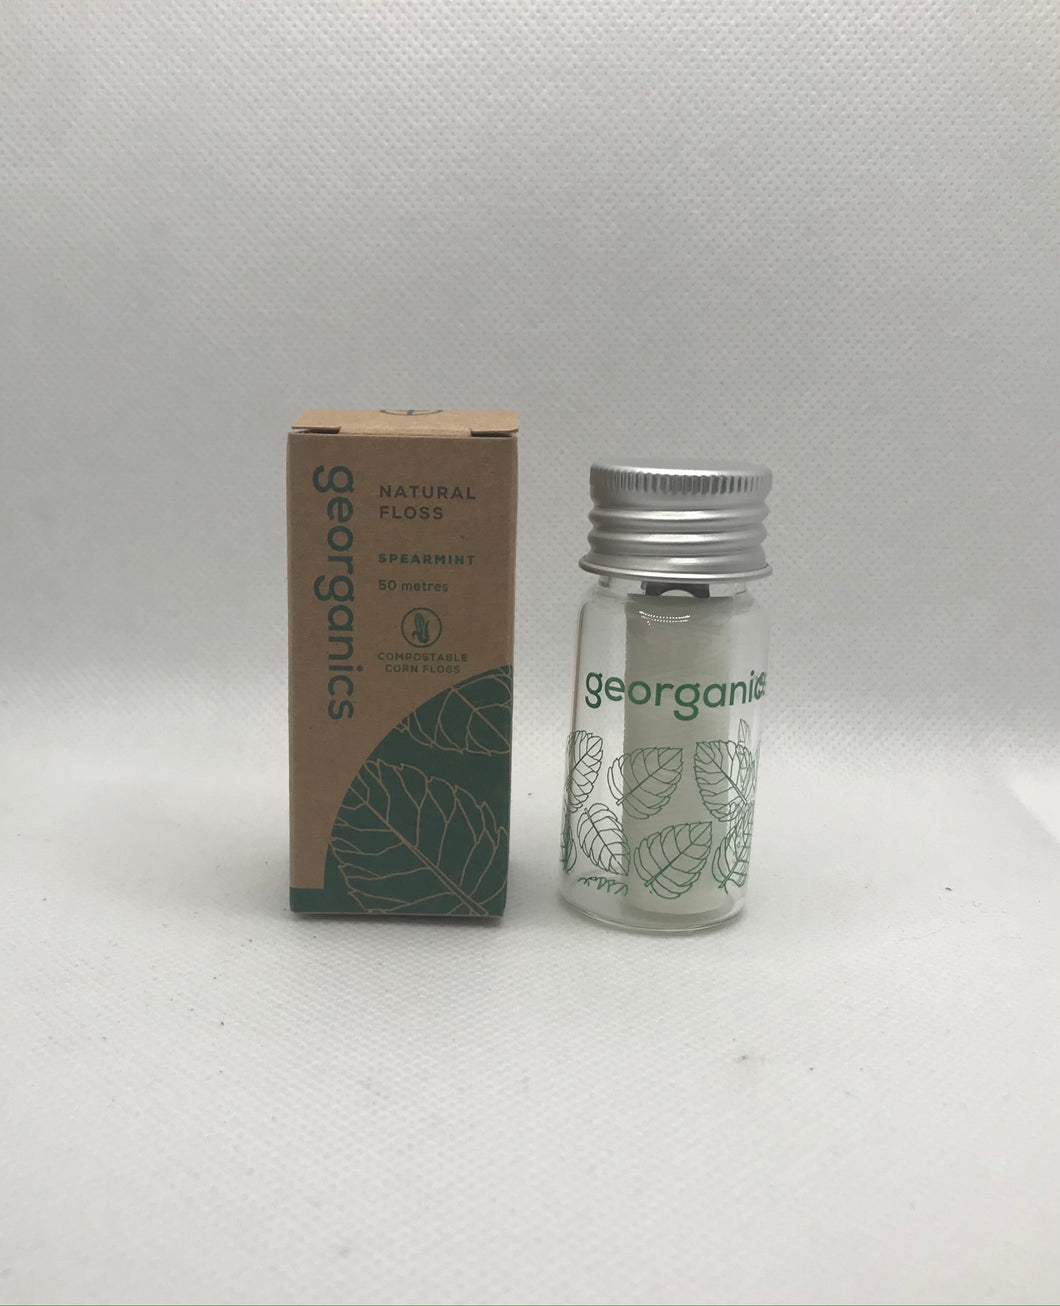 Vegan Dental Floss in Refillable Container